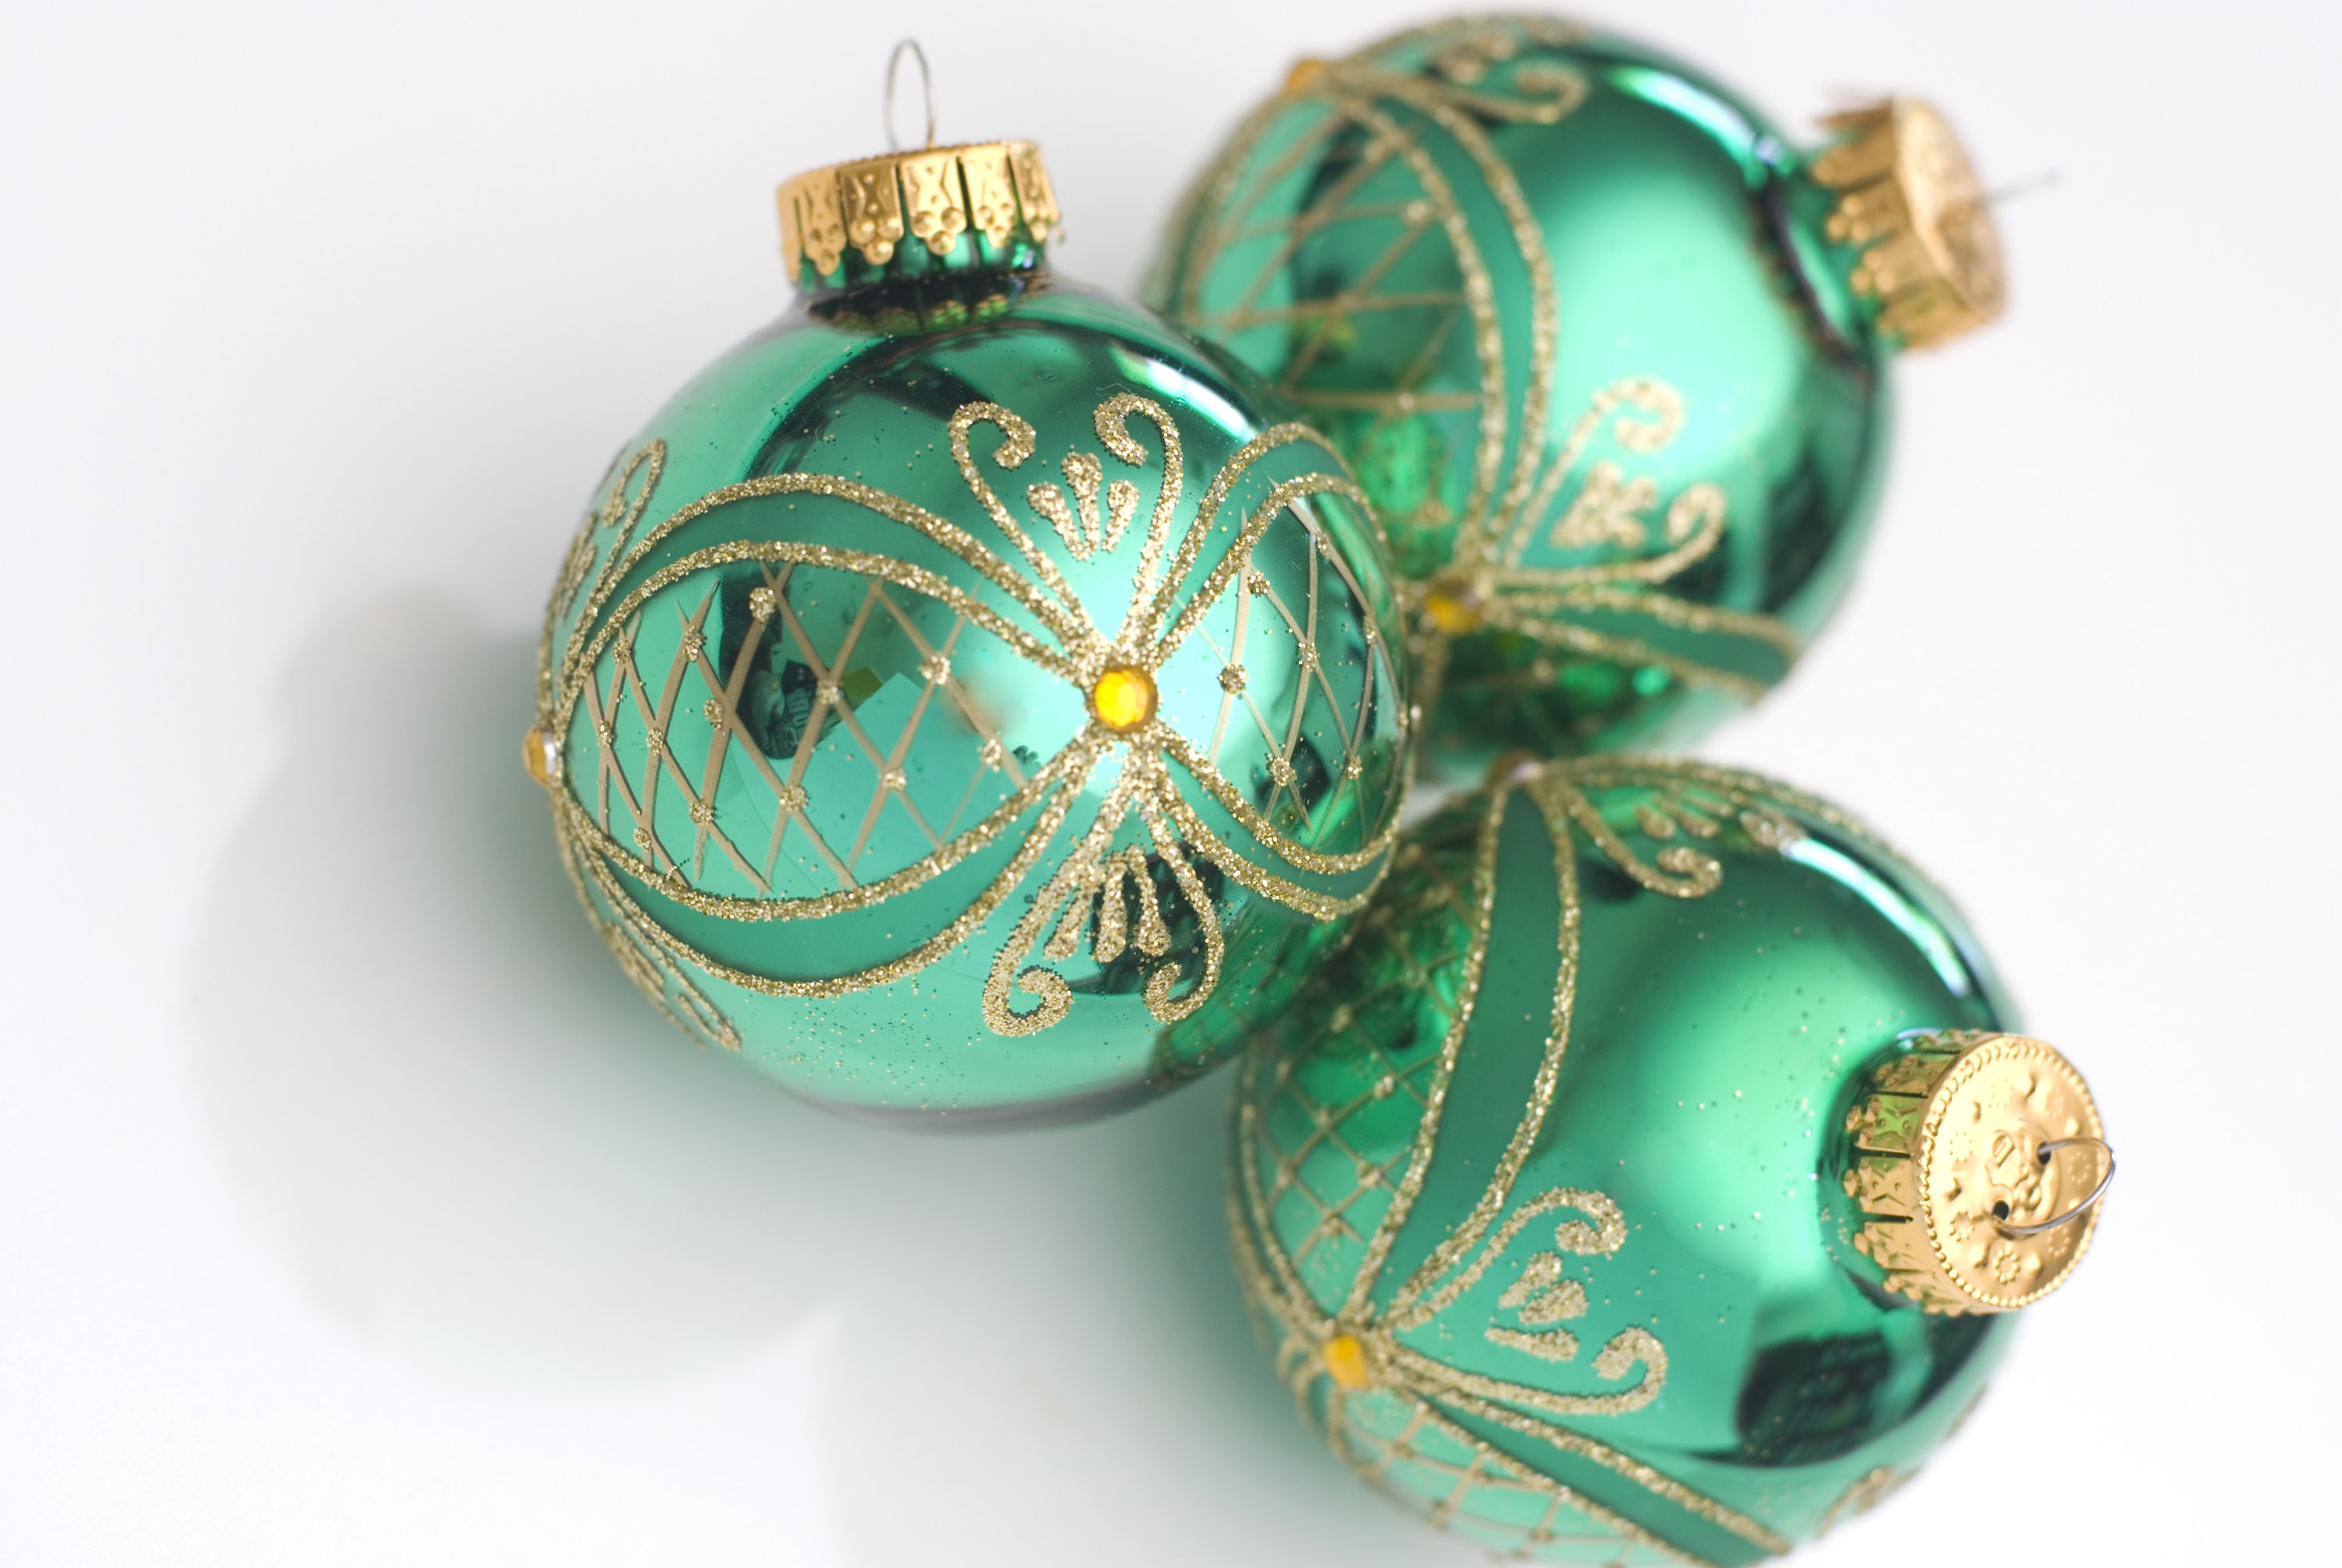 Three Green Gl Christmas Ornaments On A Plain White Background Narrow Depth Of Field Image